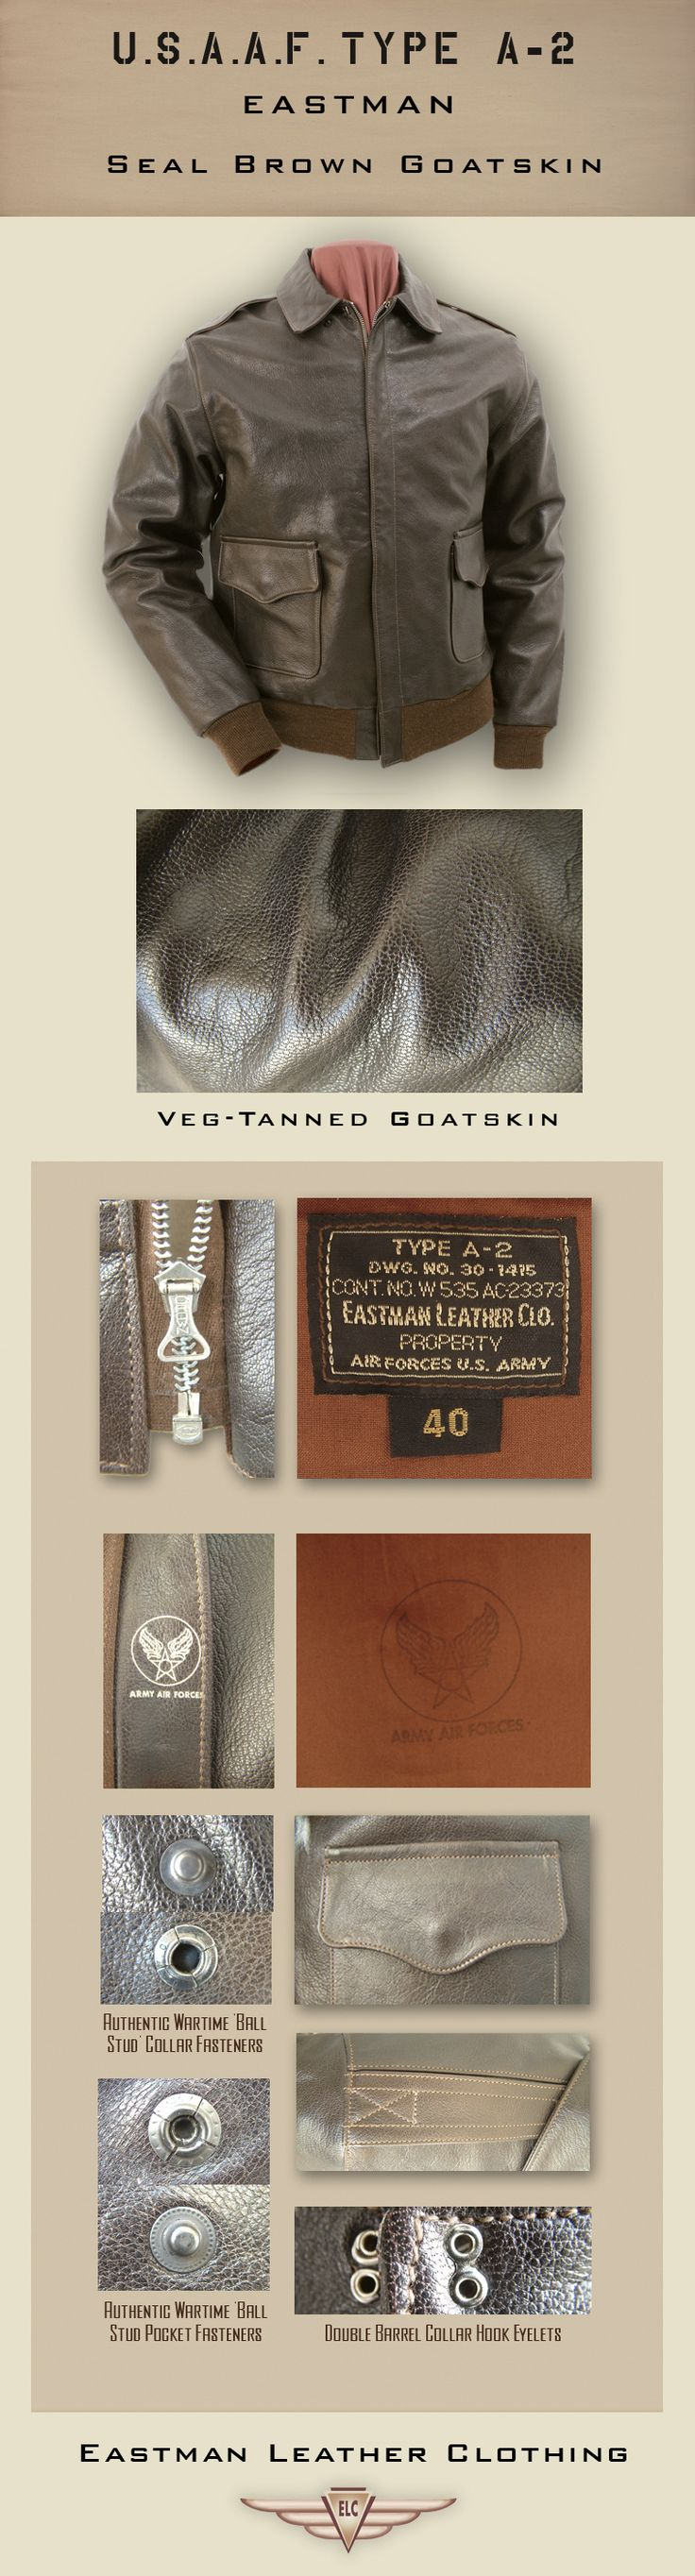 Clothing - US Flight Jackets : USAAF Eastman Leather Jackets : A-2sgs